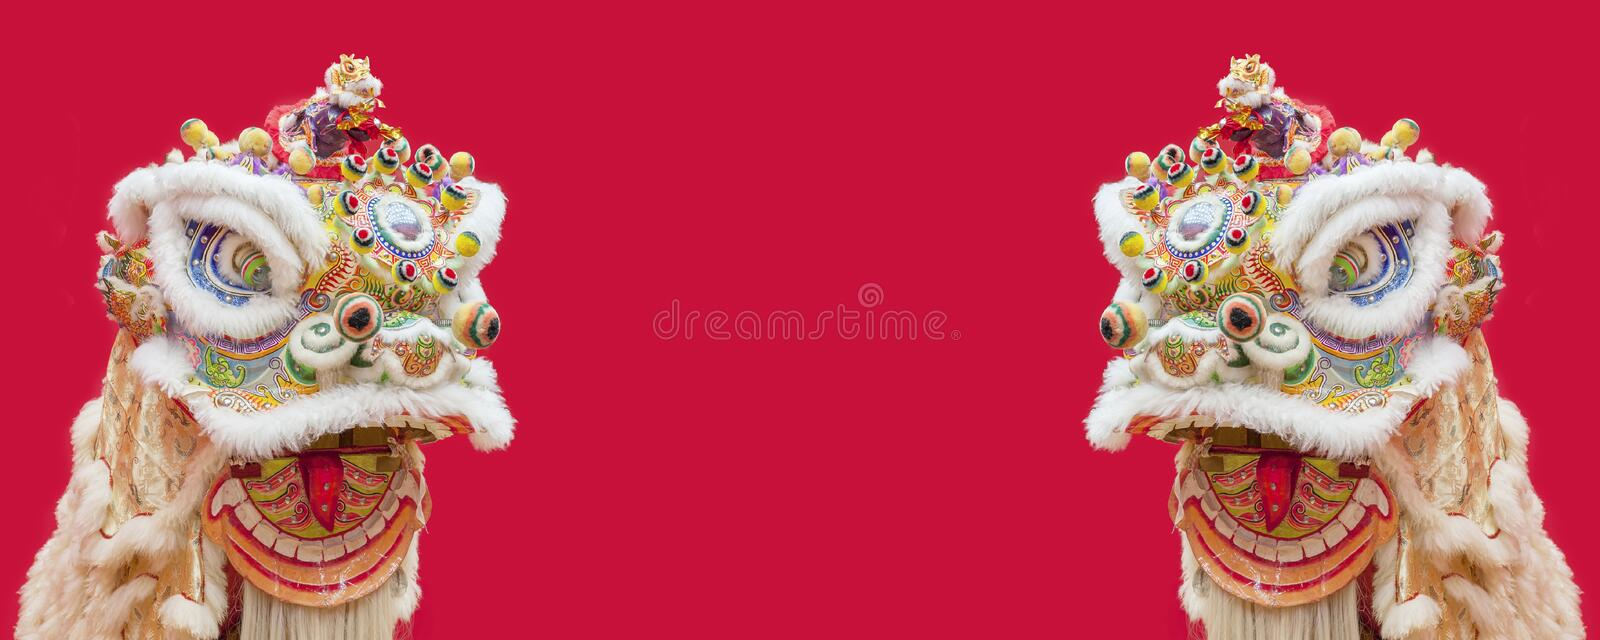 Lion Dance Costume royalty free stock images